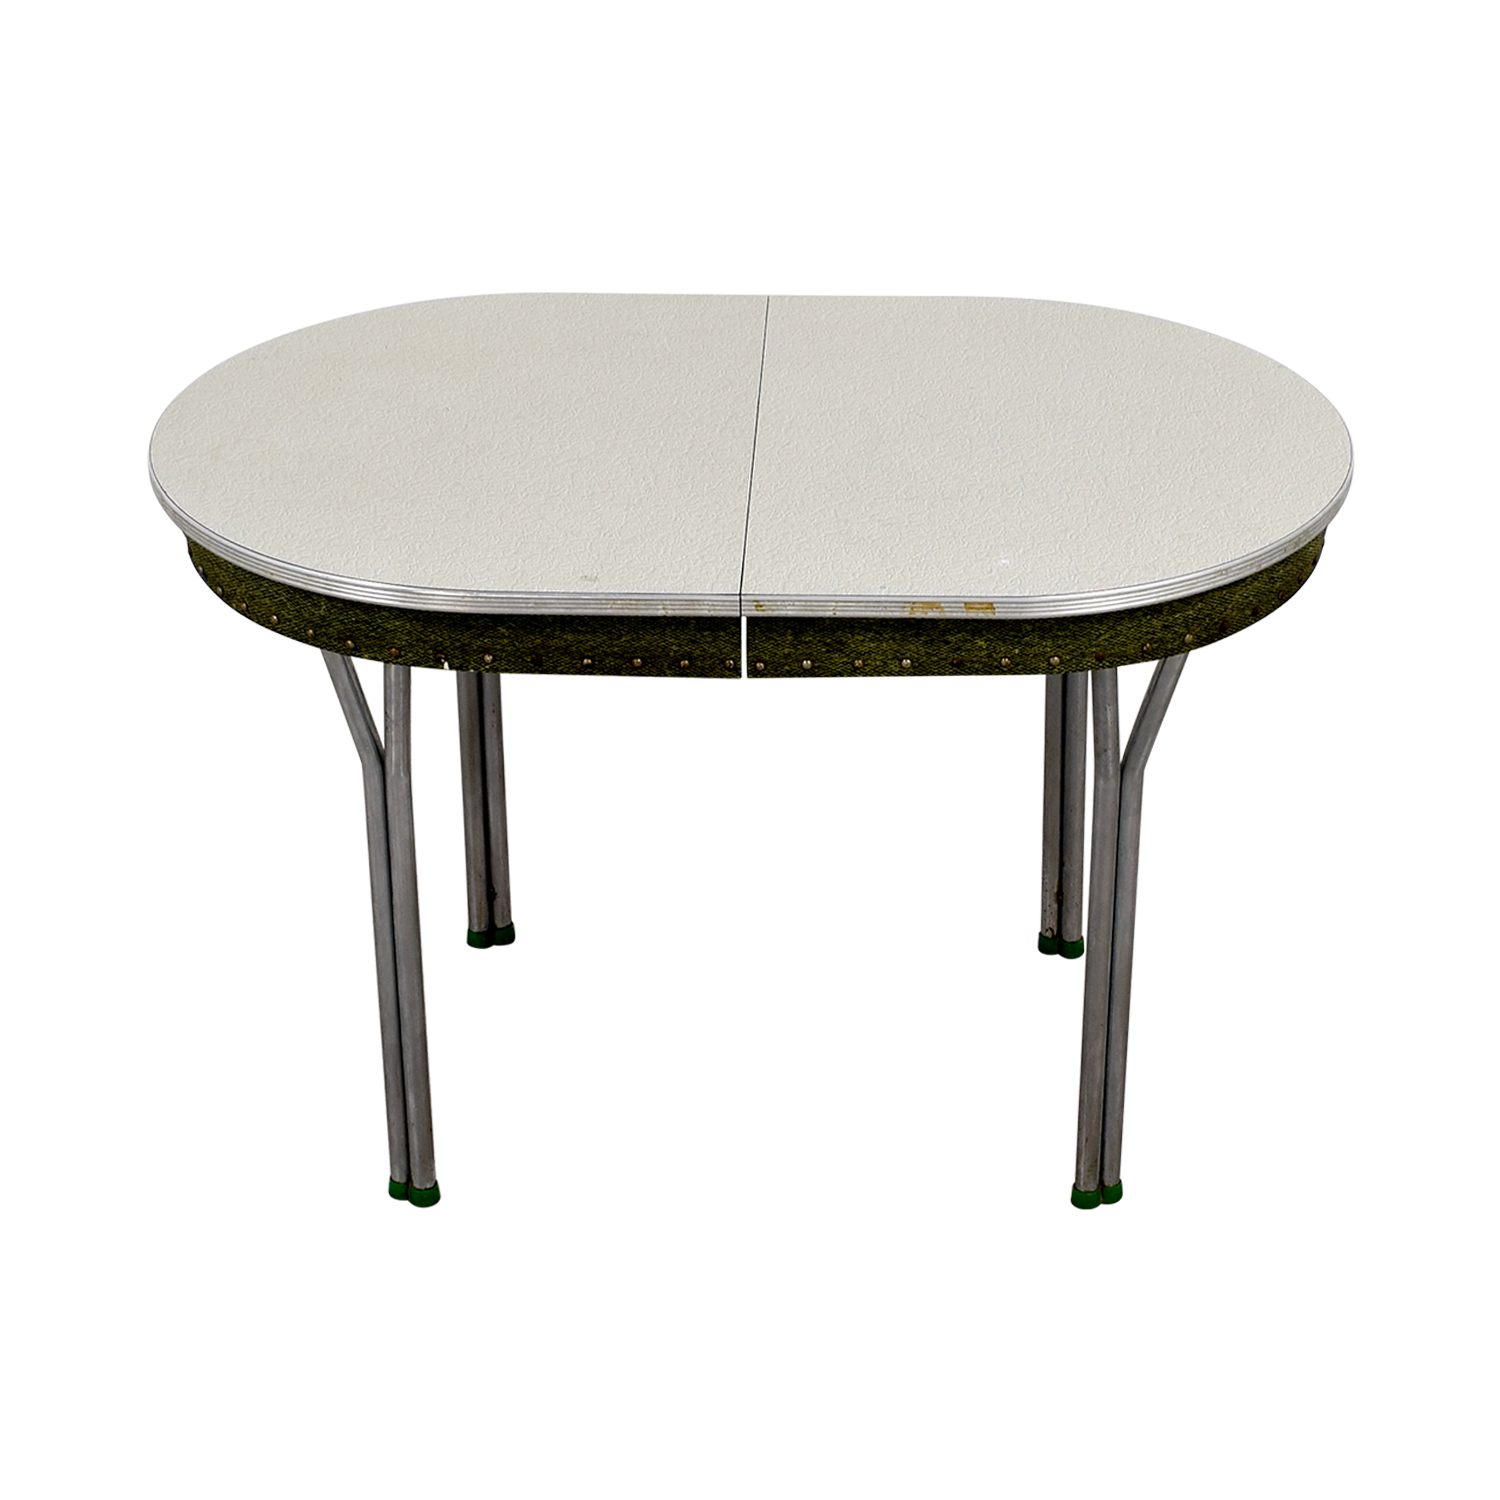 Vintage 1950s Green Formica Table with Inserts